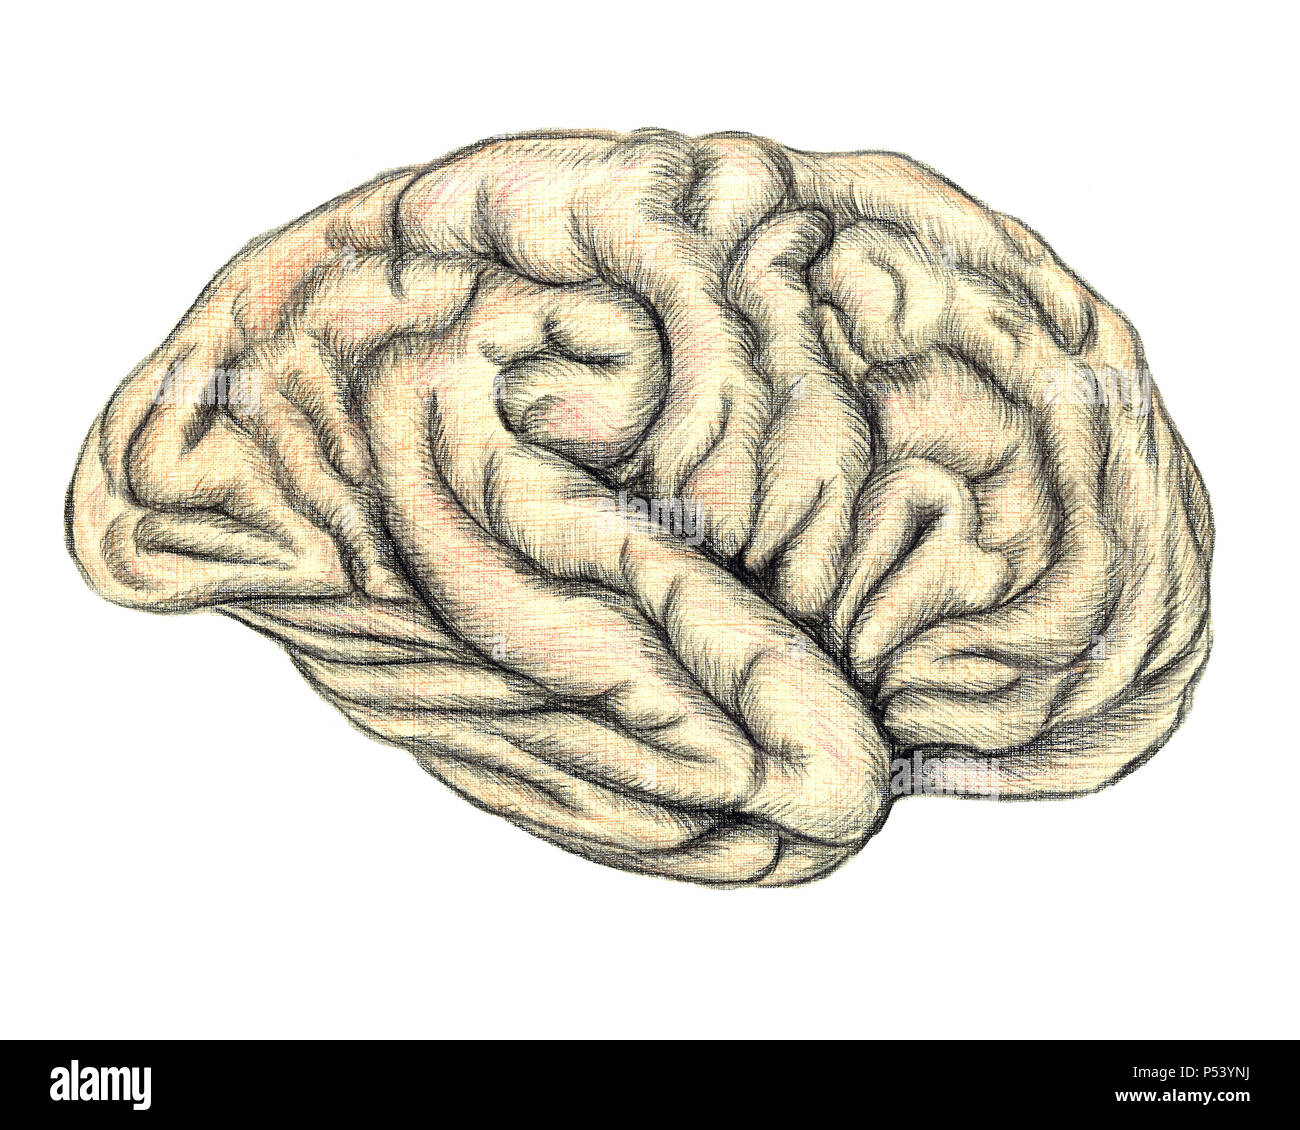 Human brain side diagram stock photos human brain side diagram human brain side view hand drawn medical illustration color pencils drawing with imitation of ccuart Gallery